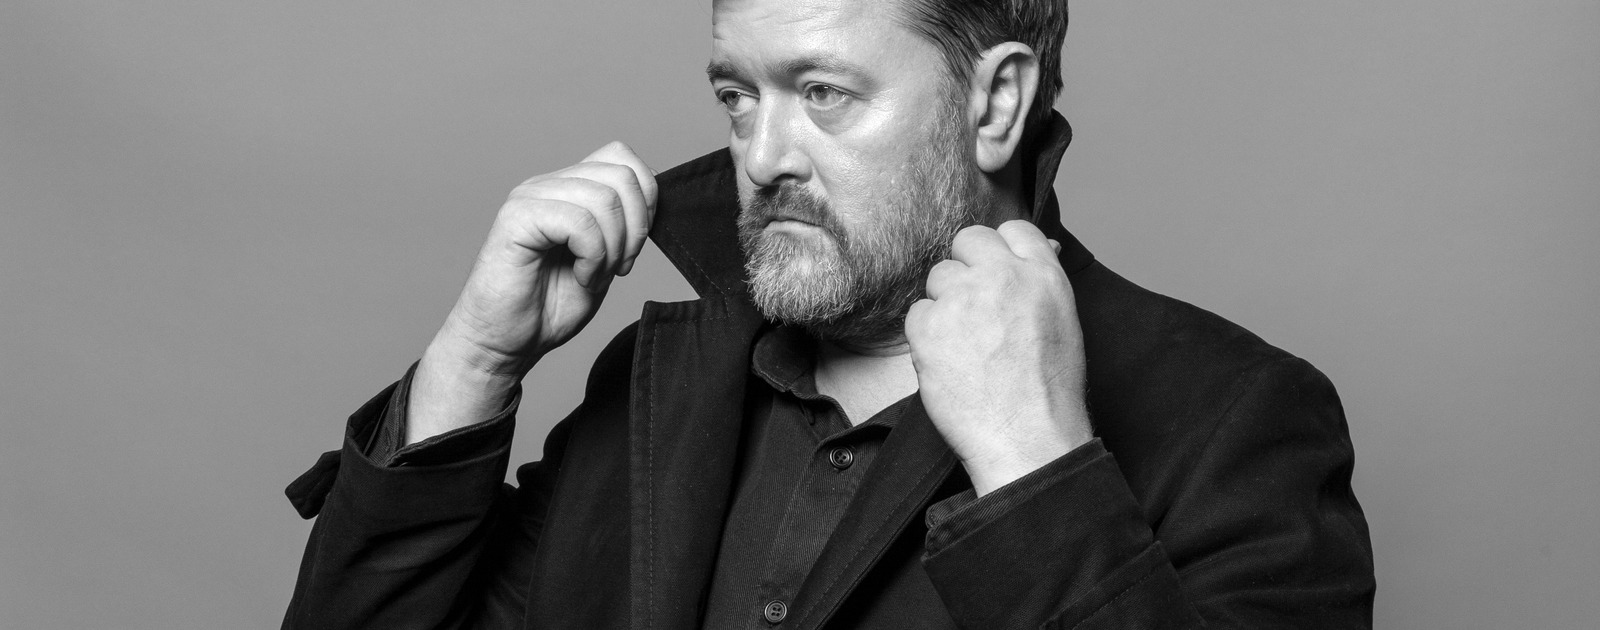 Singer, Songwriter and guitarist with the band Elbow, Guy Garvey shot at the Albert Hall in Manchester for the Guardian Weekend Magazine..